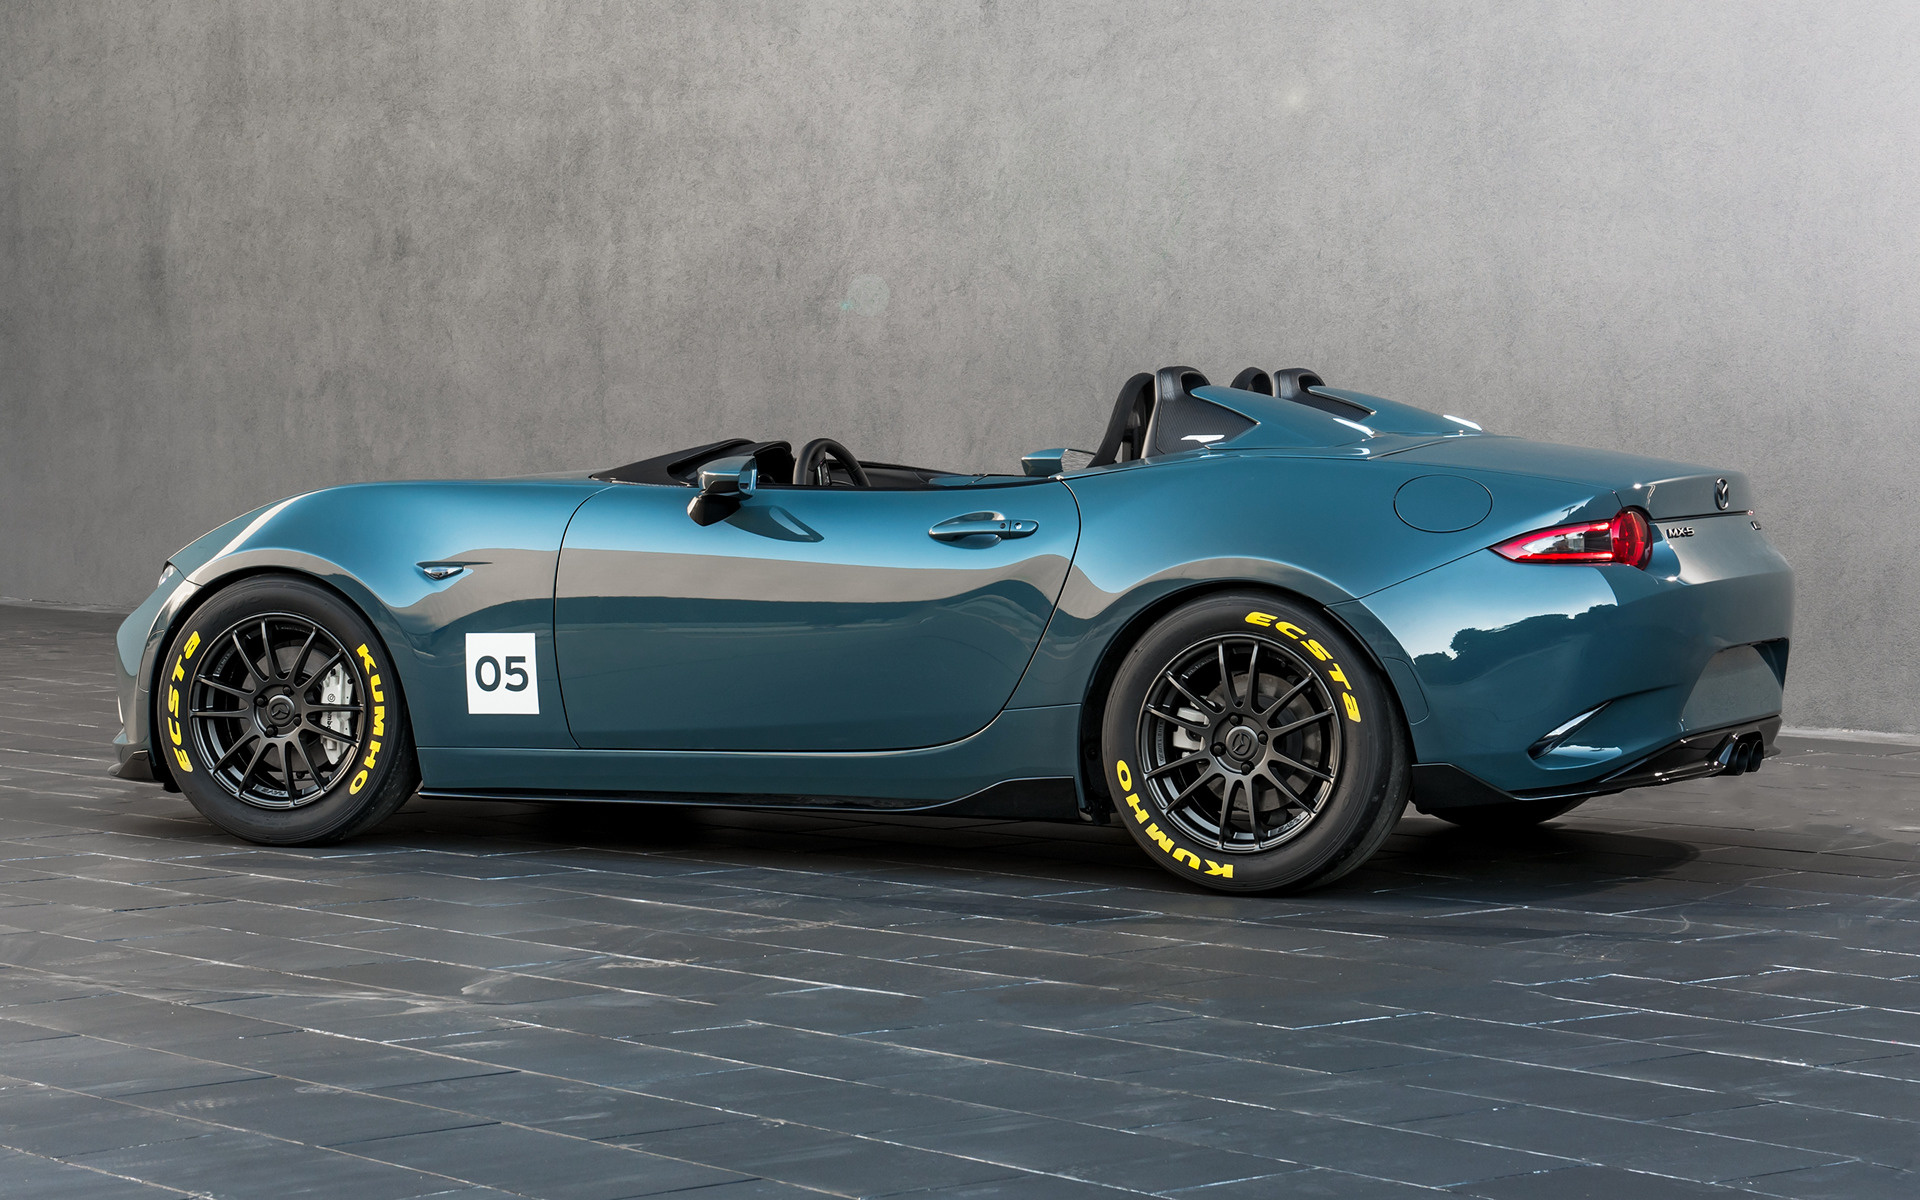 Mazda MX-5 Speedster Concept (2015) Wallpapers and HD Images - Car Pixel